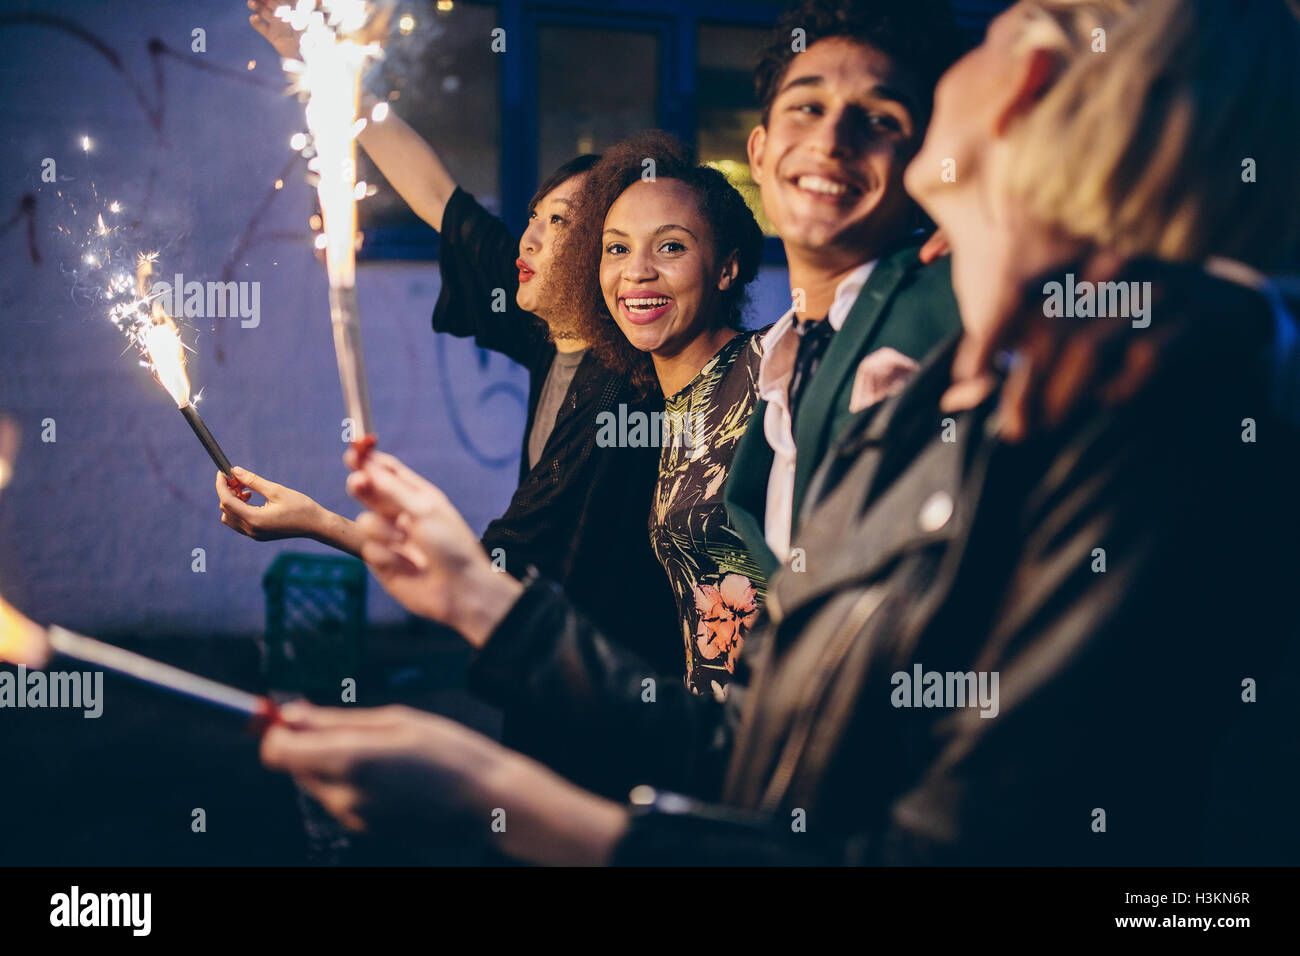 Group of friends enjoying out with sparklers. Young men and women enjoying new years eve with fireworks. - Stock Image